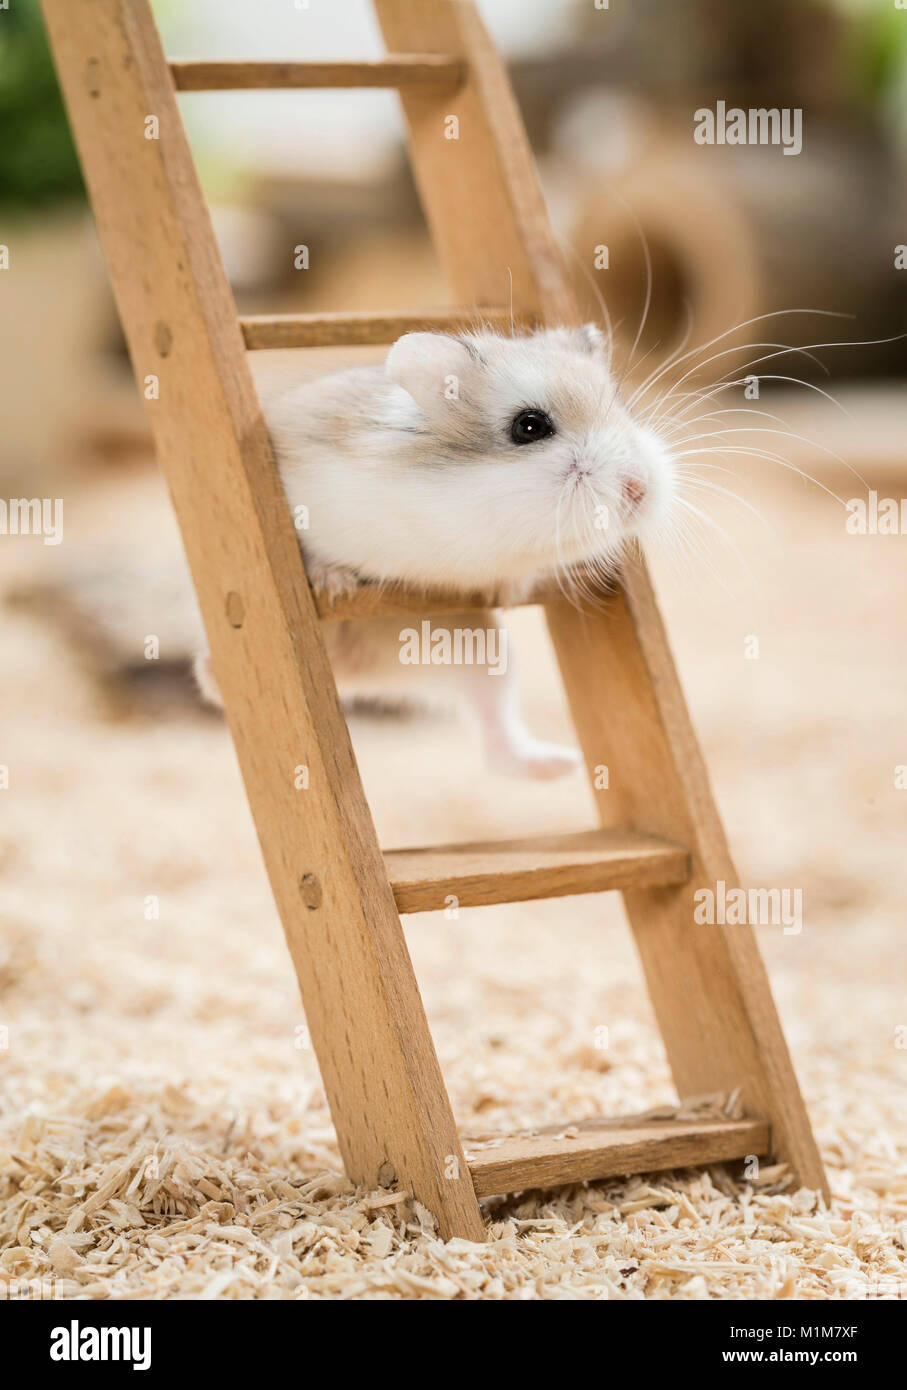 Roborovski Hamster (Phodopus roborovskii) climbing on a wooden ladder. Restriction: Not for guidebooks for pet care - Stock Image